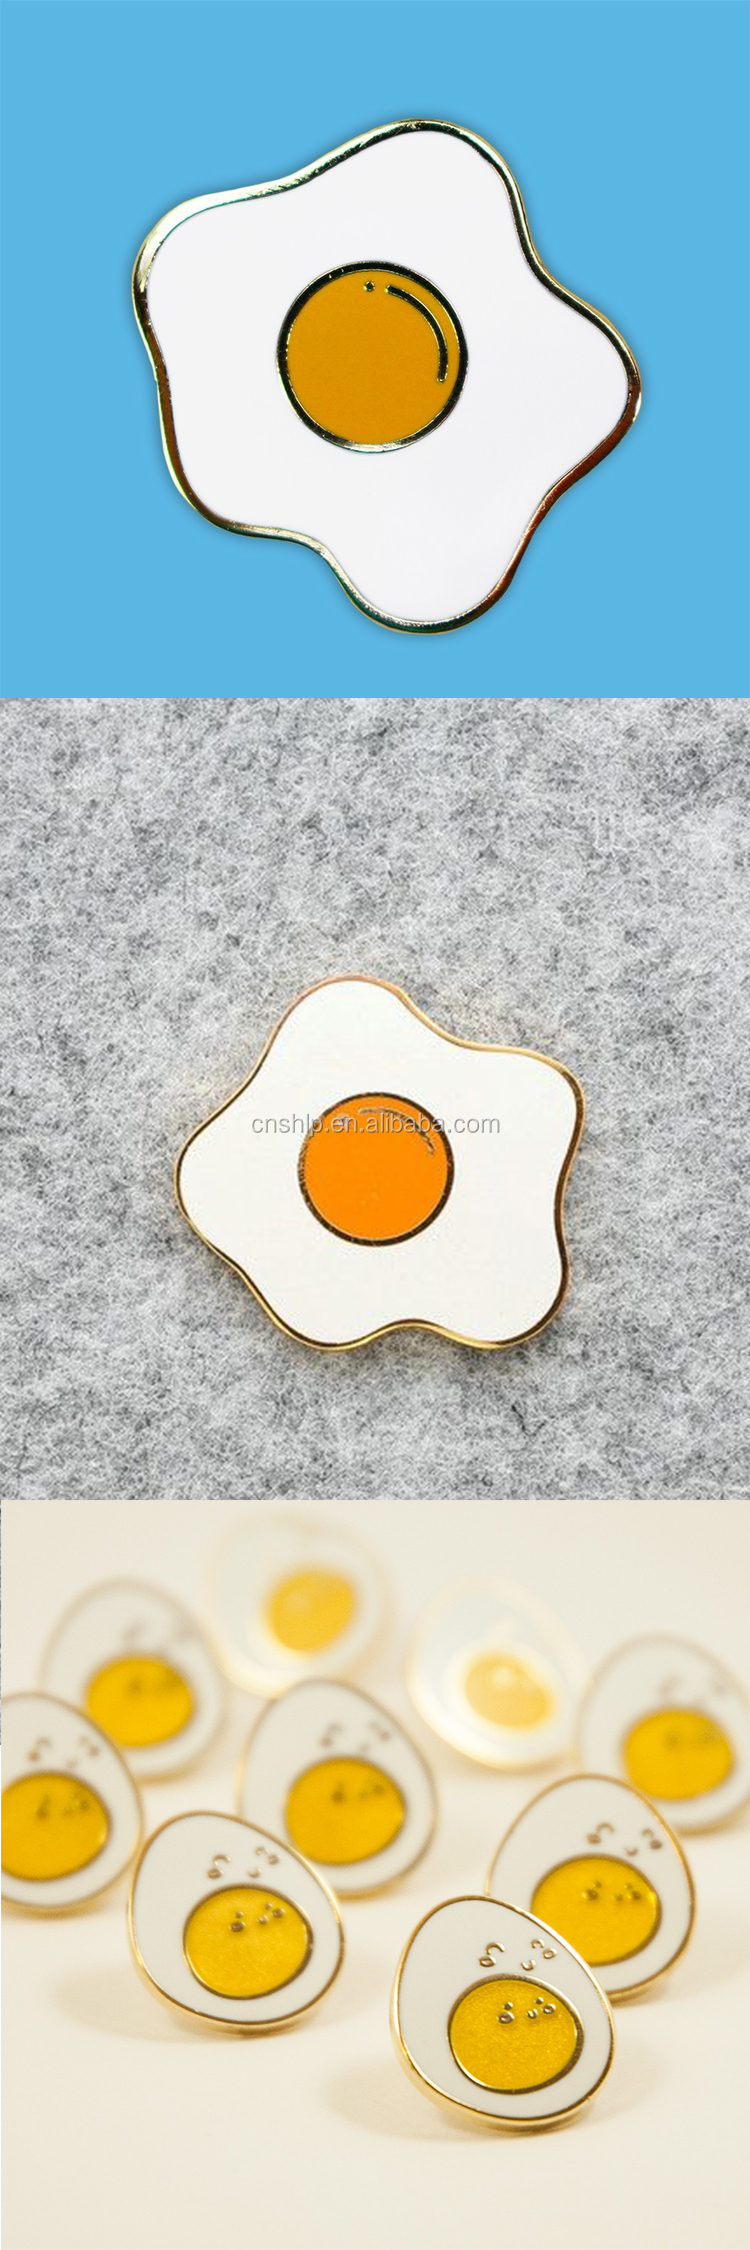 China factory wholesale gold plated funny egg enamel badge pins